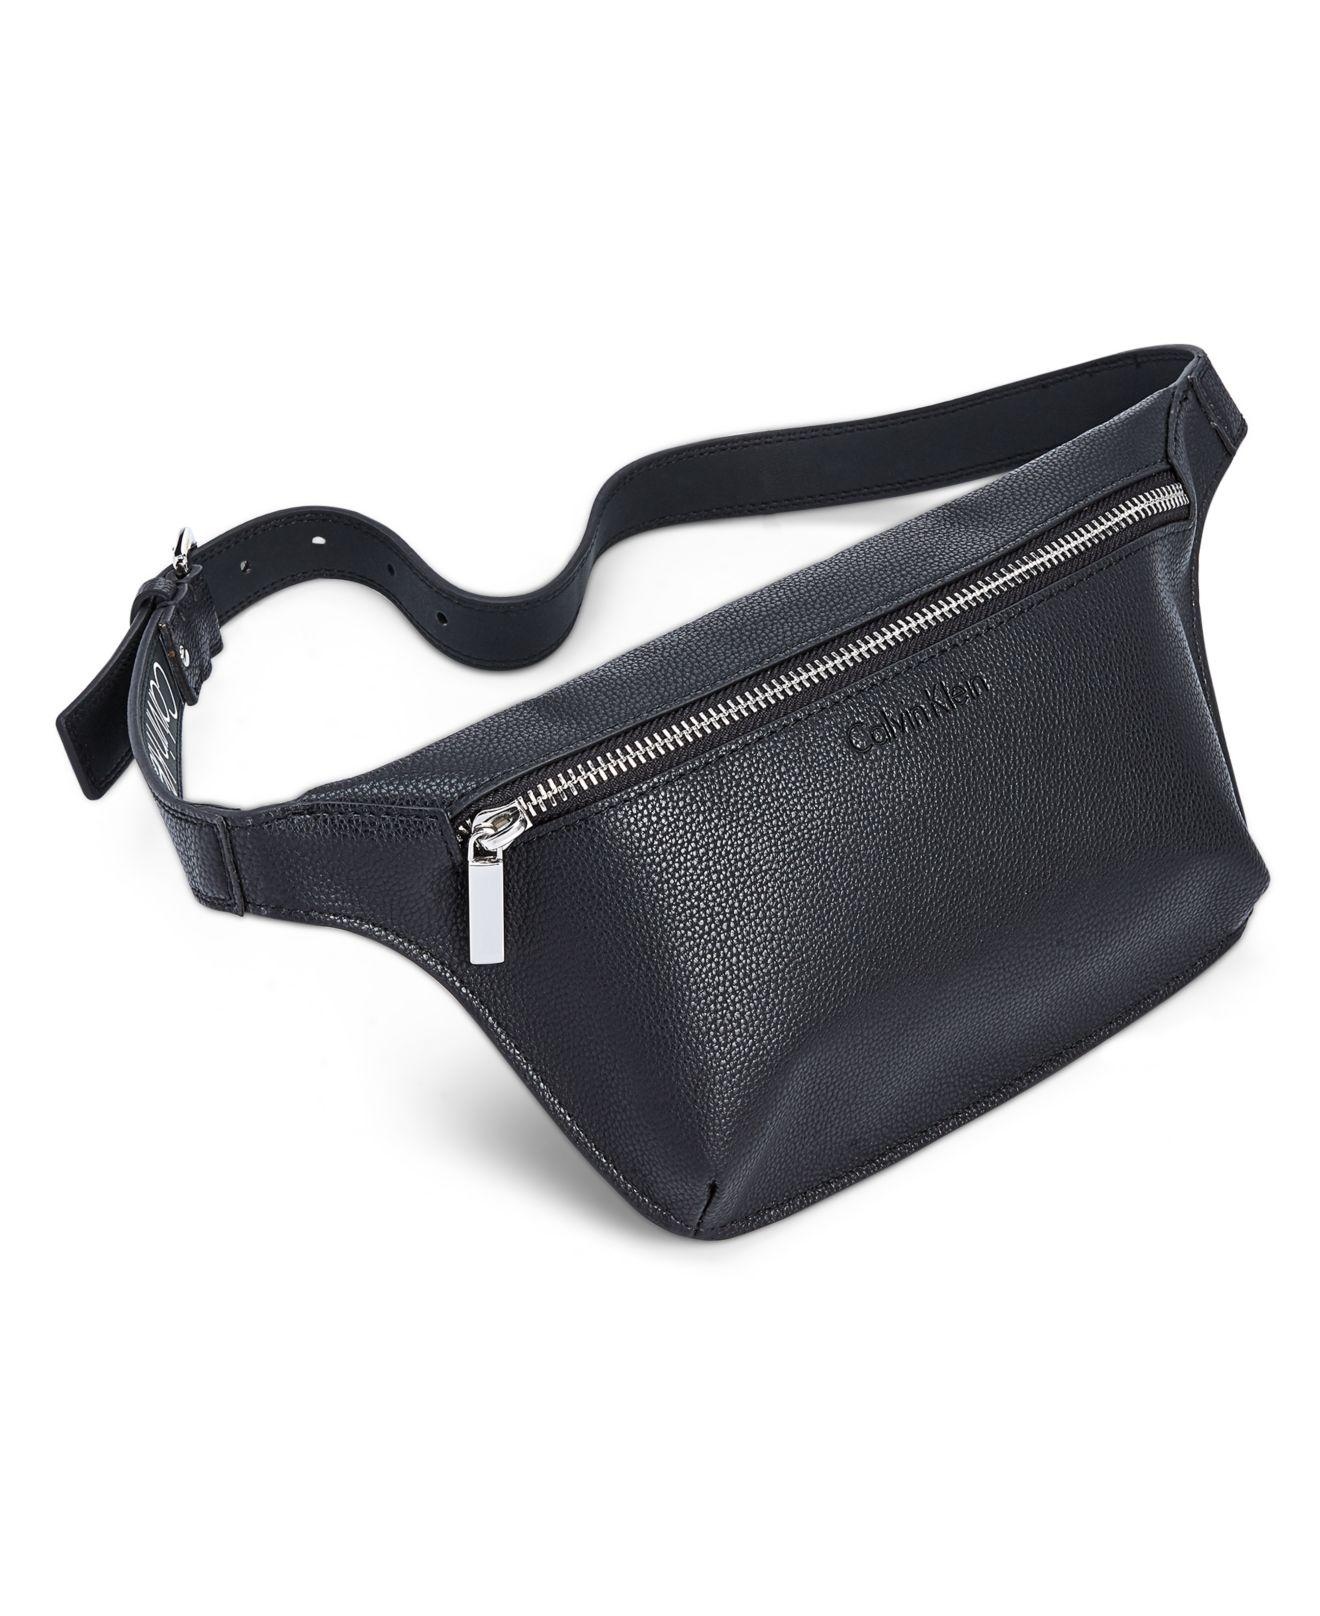 879a9728751 Calvin Klein Pebble Leather Fanny Pack in Black - Lyst